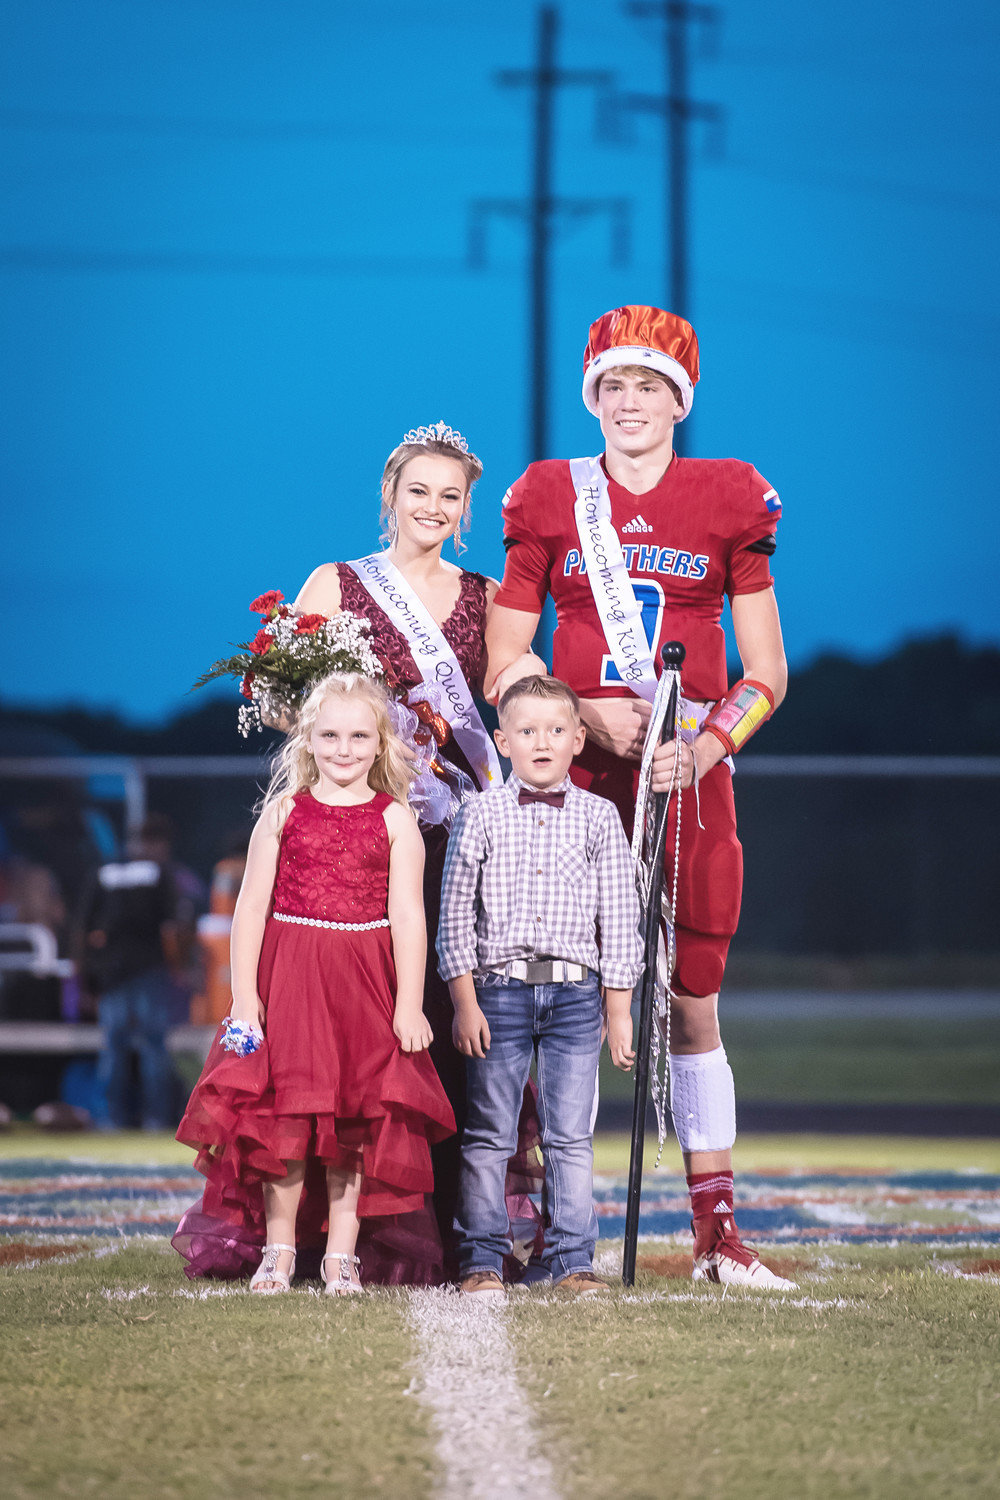 Alba-Golden named Macie Pendergrass as Homecoming Queen and Zane Smith King at Friday's homecoming activities. Emma Bohannon and Hogan Webster served as flower girl and crown-bearer.